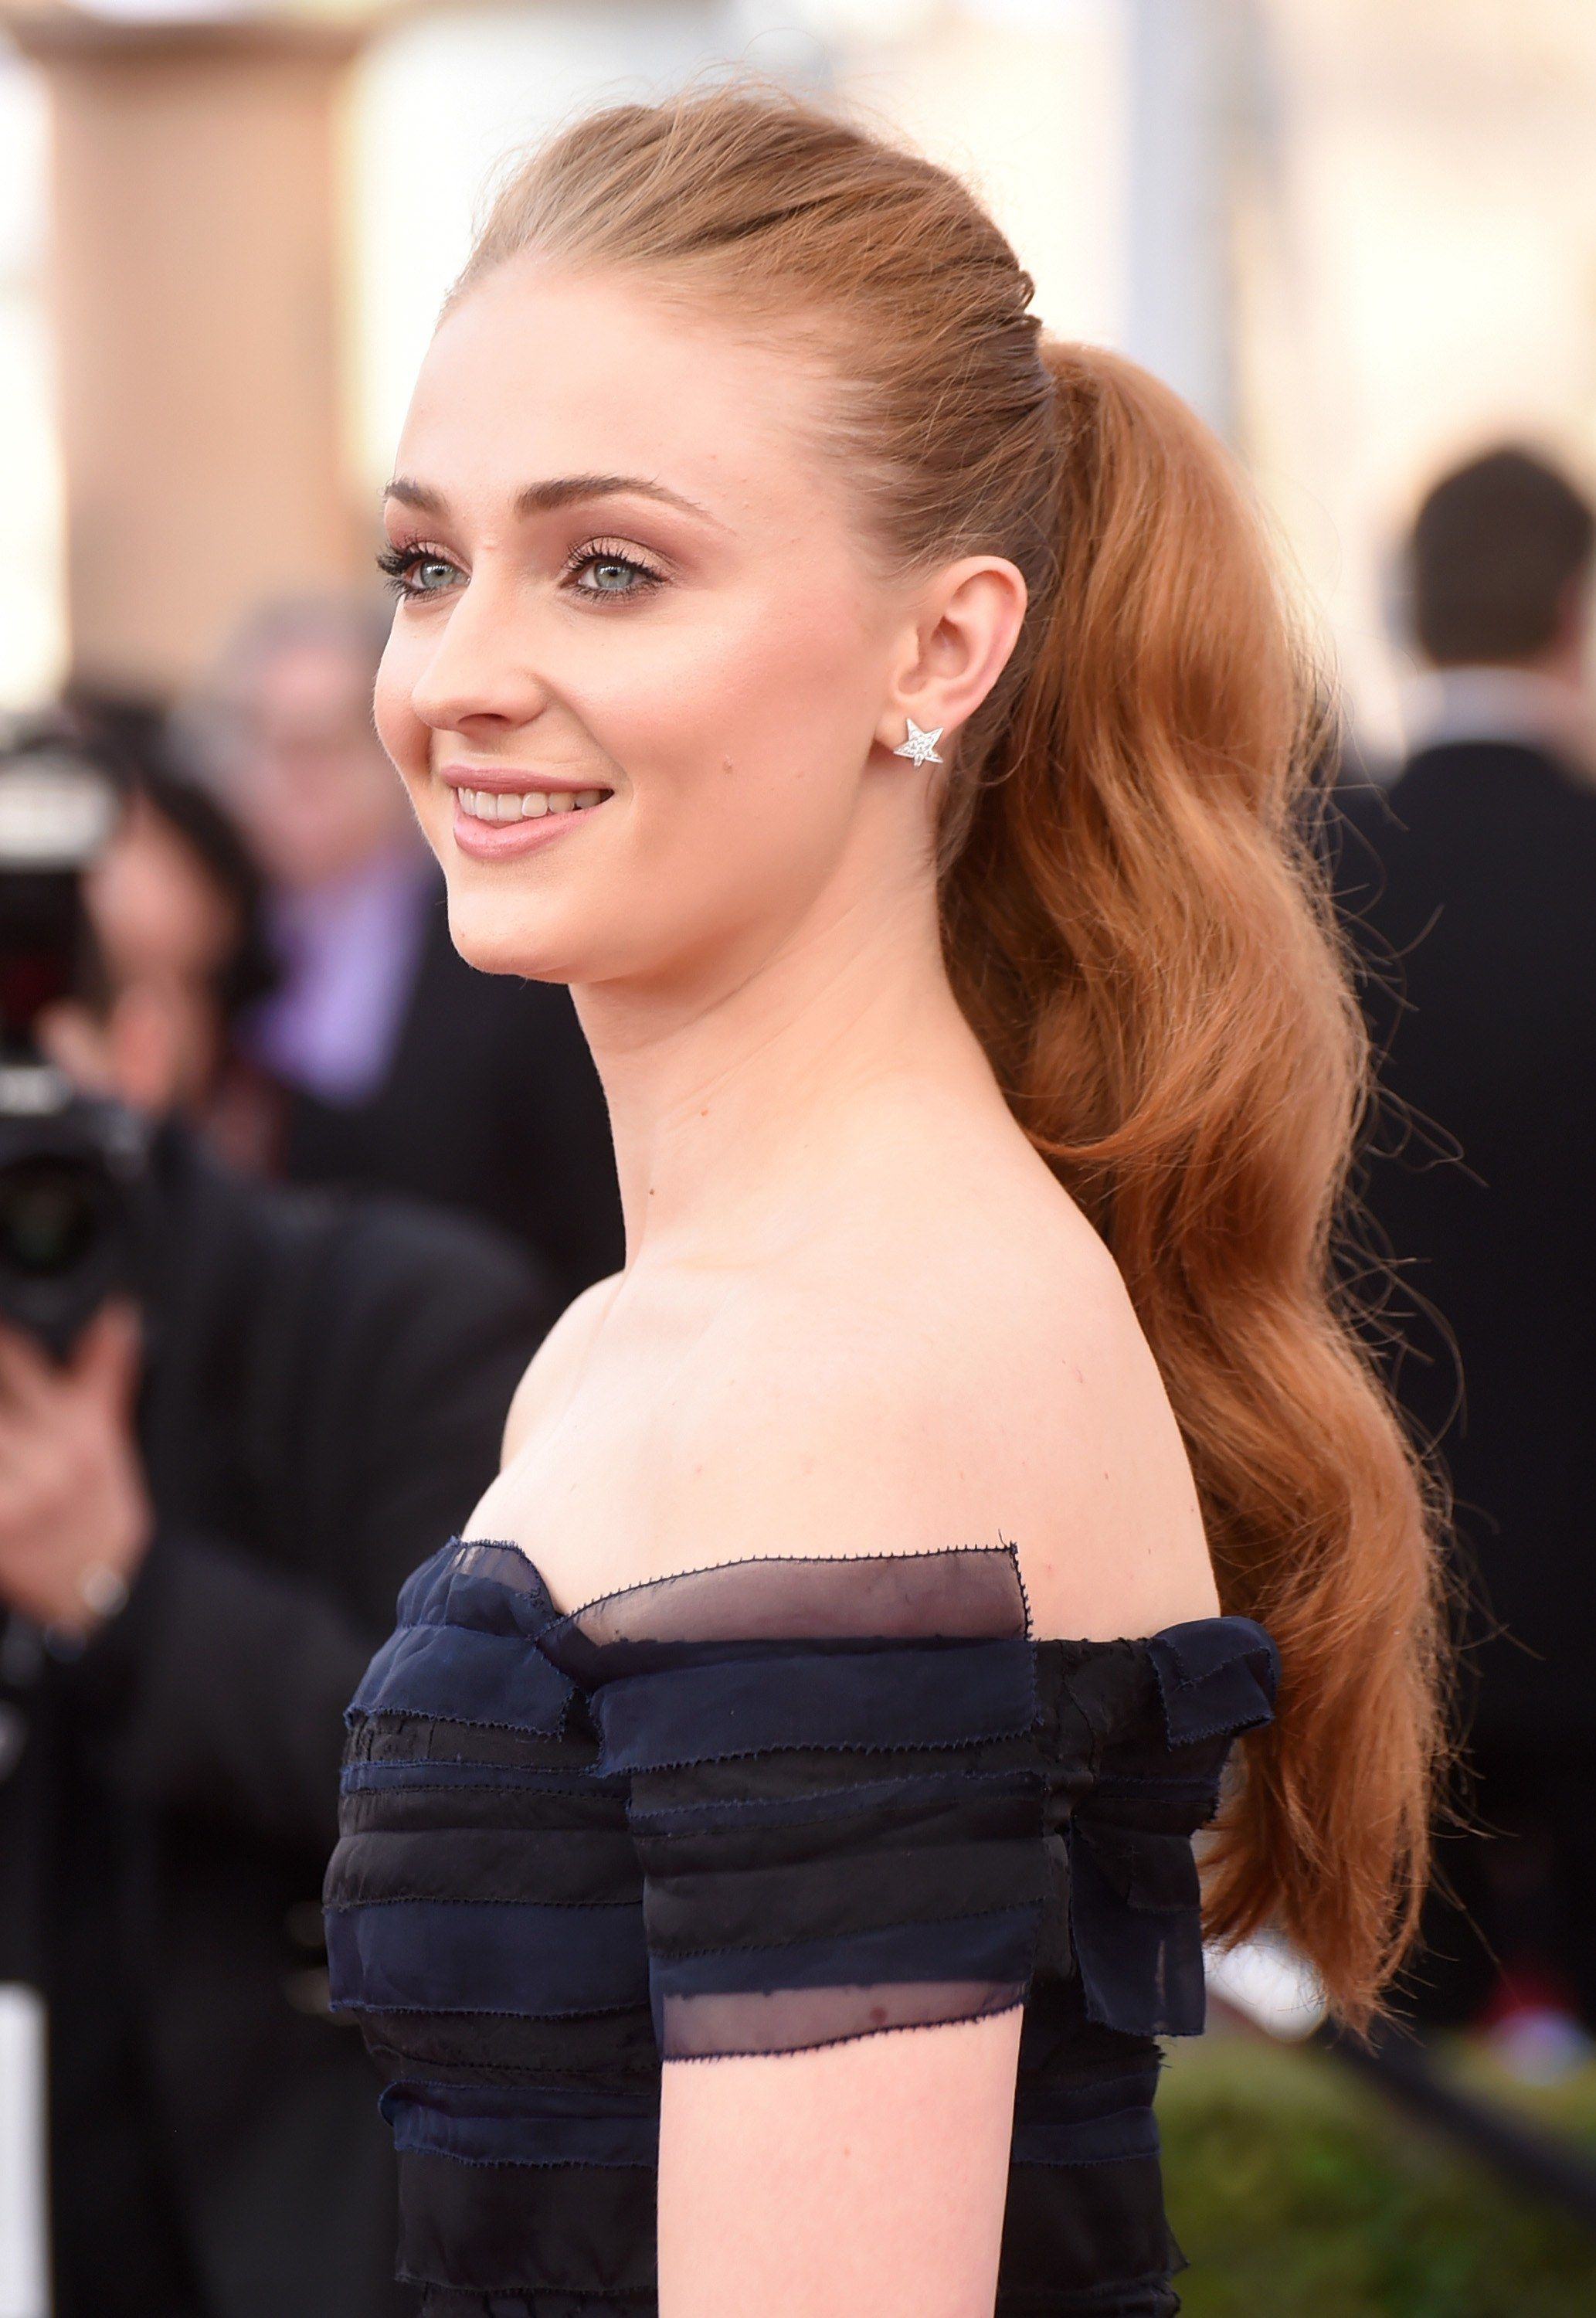 Sophie Turner S Most Daring Beauty Moments From Fiery Red Curls To Platinum Blonde Waves Red Hair Celebrities Hair Styles Daily Hairstyles